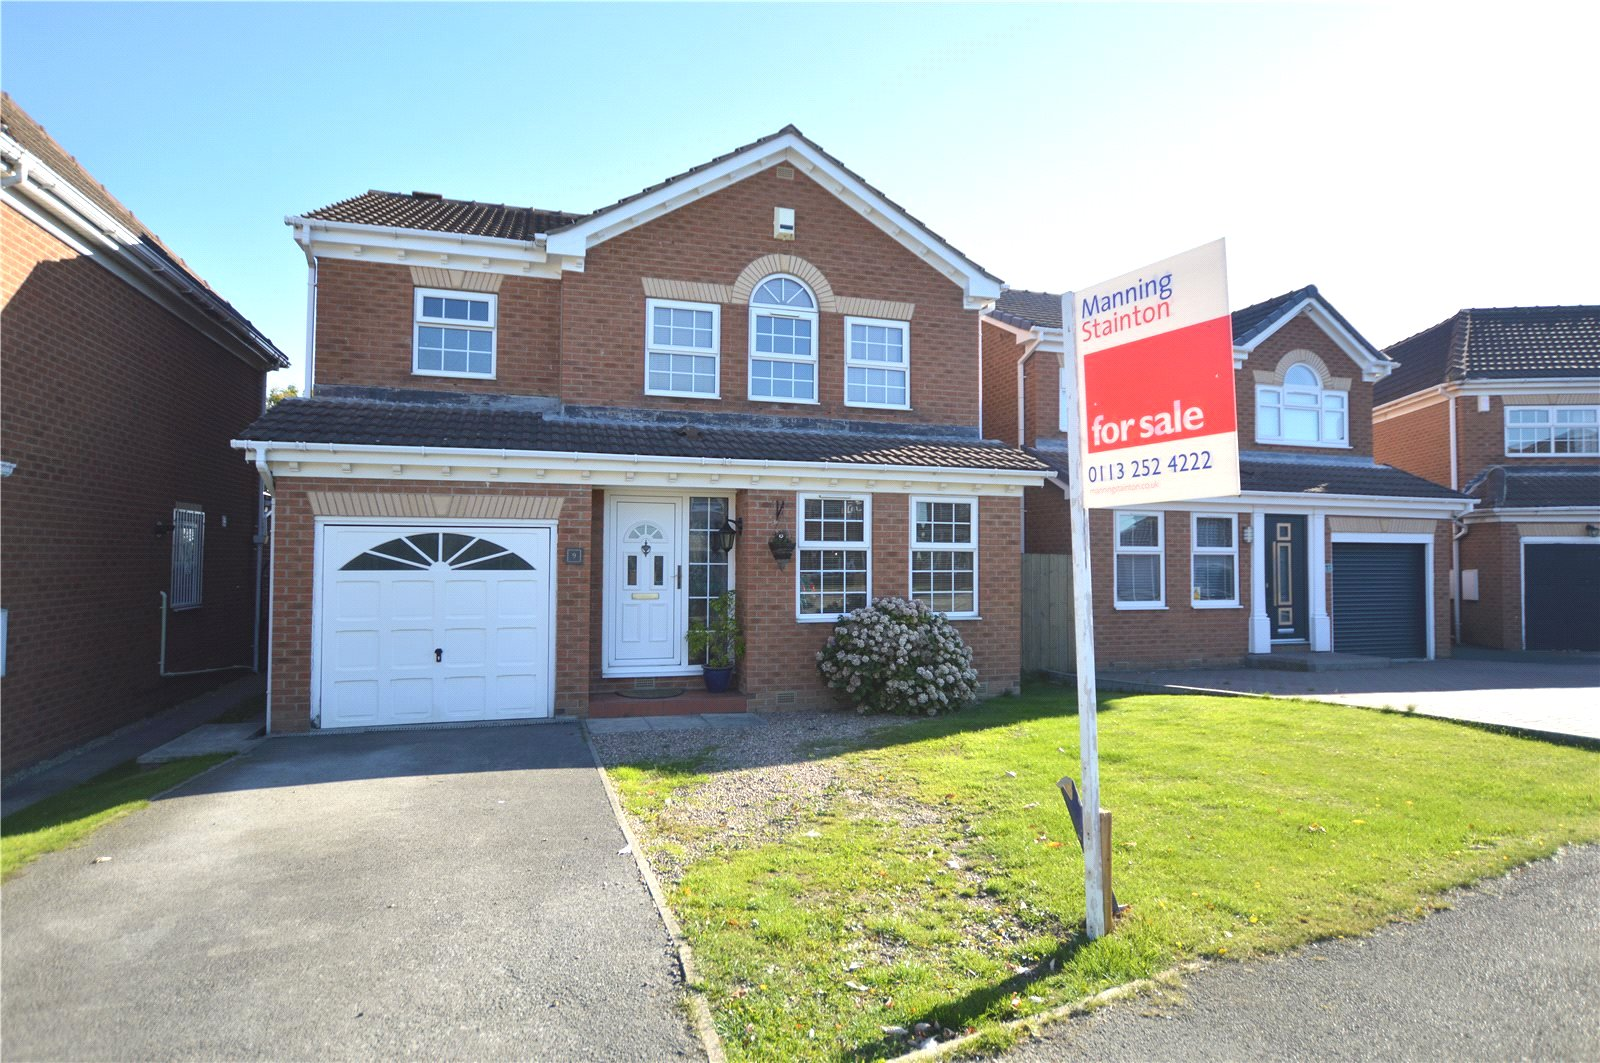 property for sale in Pudsey, exterior of detached home red brick